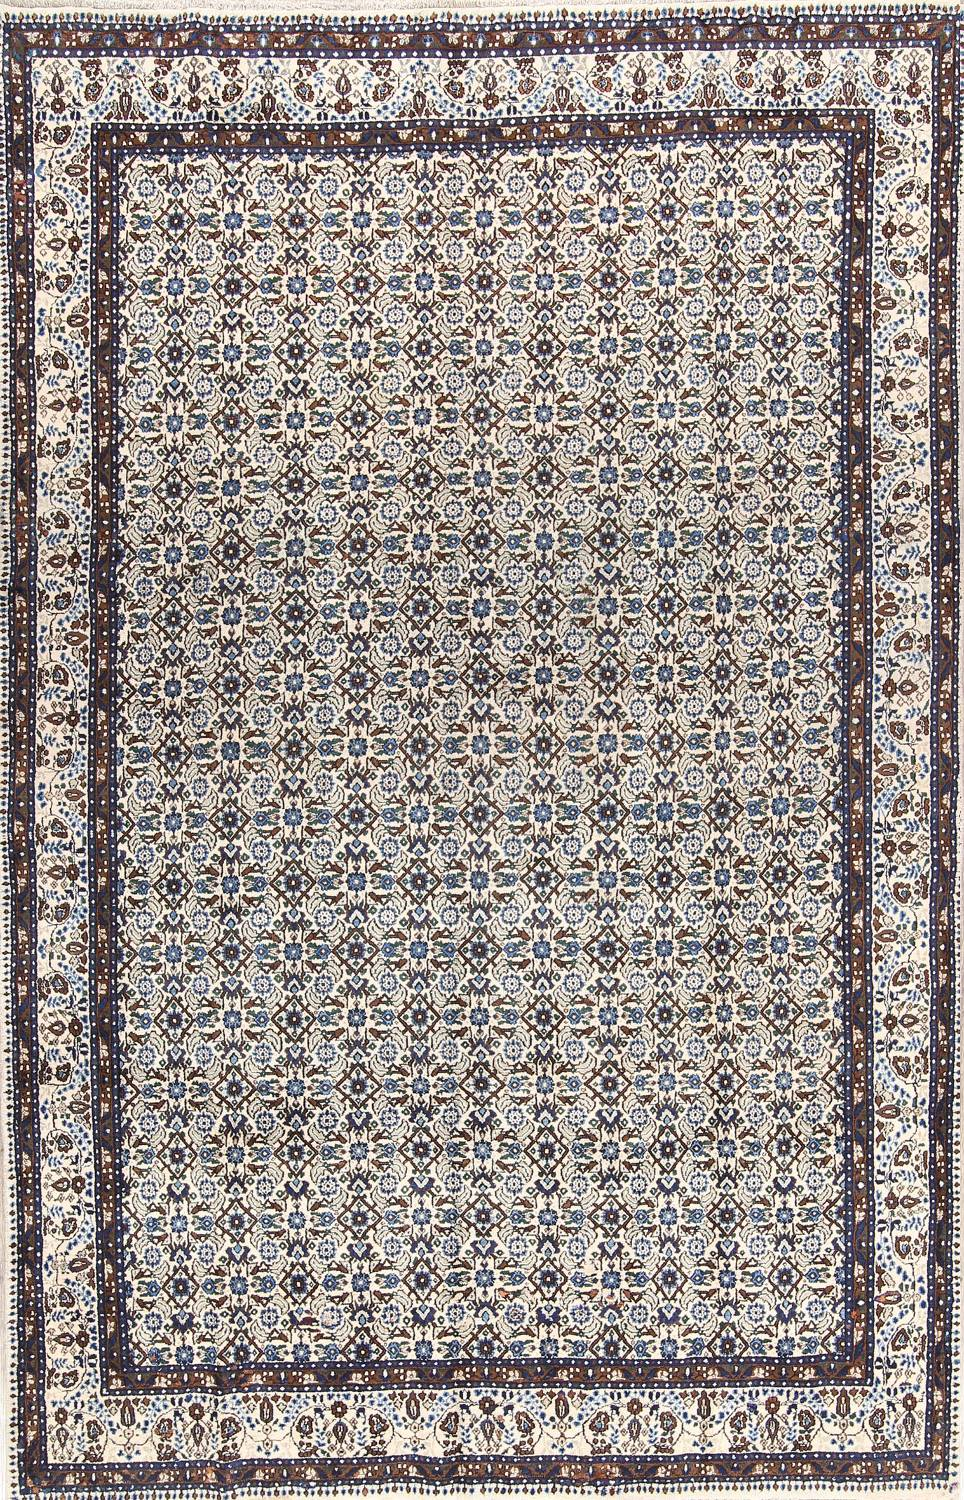 All-Over Floral 7x11 Mood Persian Wool Area Rug image 1